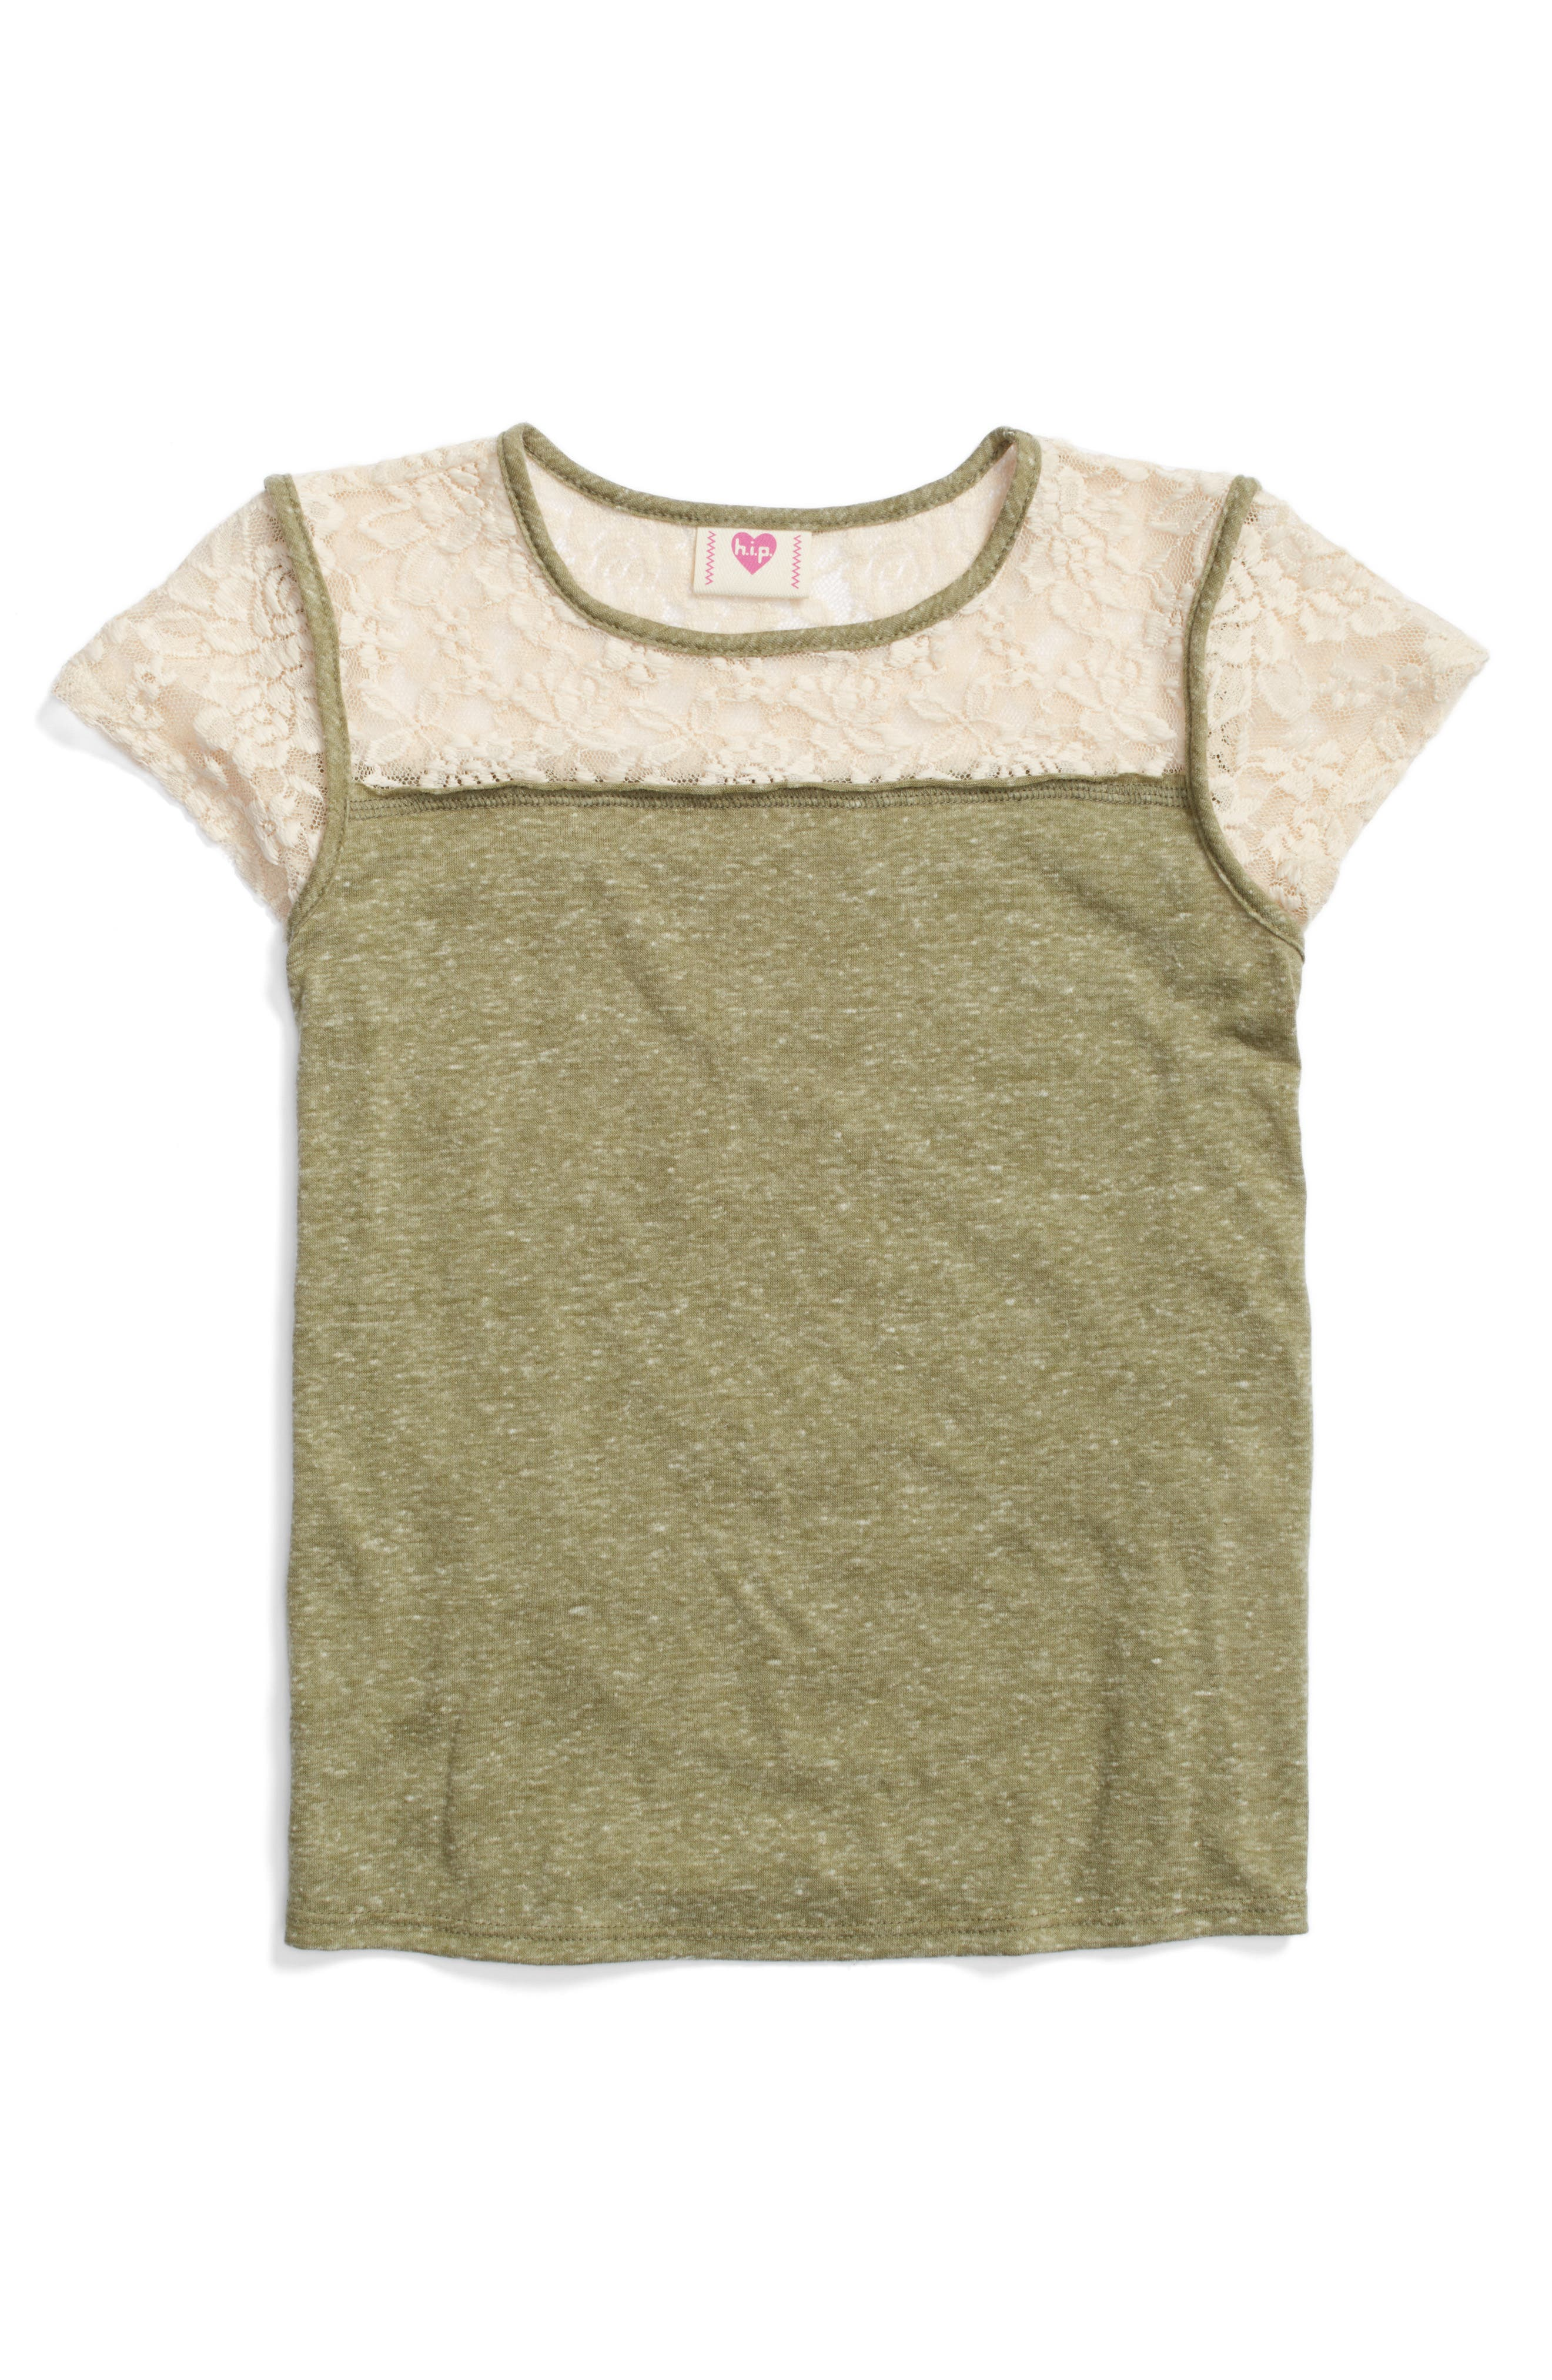 h.i.p. Lace Trim Tee (Big Girls)